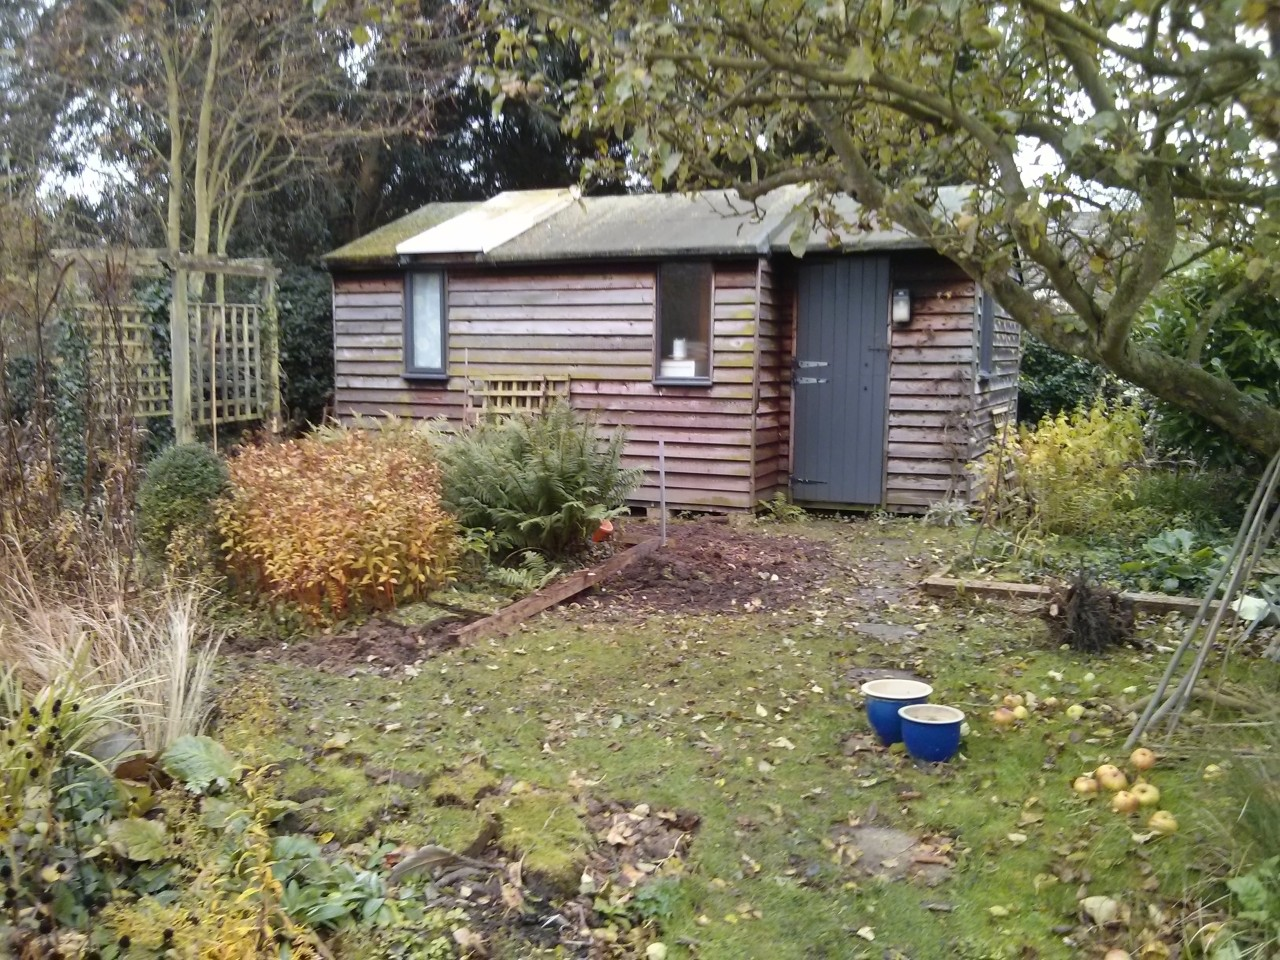 More work in the garden today, still clearing things. Beginning to realign the paths and beds and opening up space and light around the old studio.